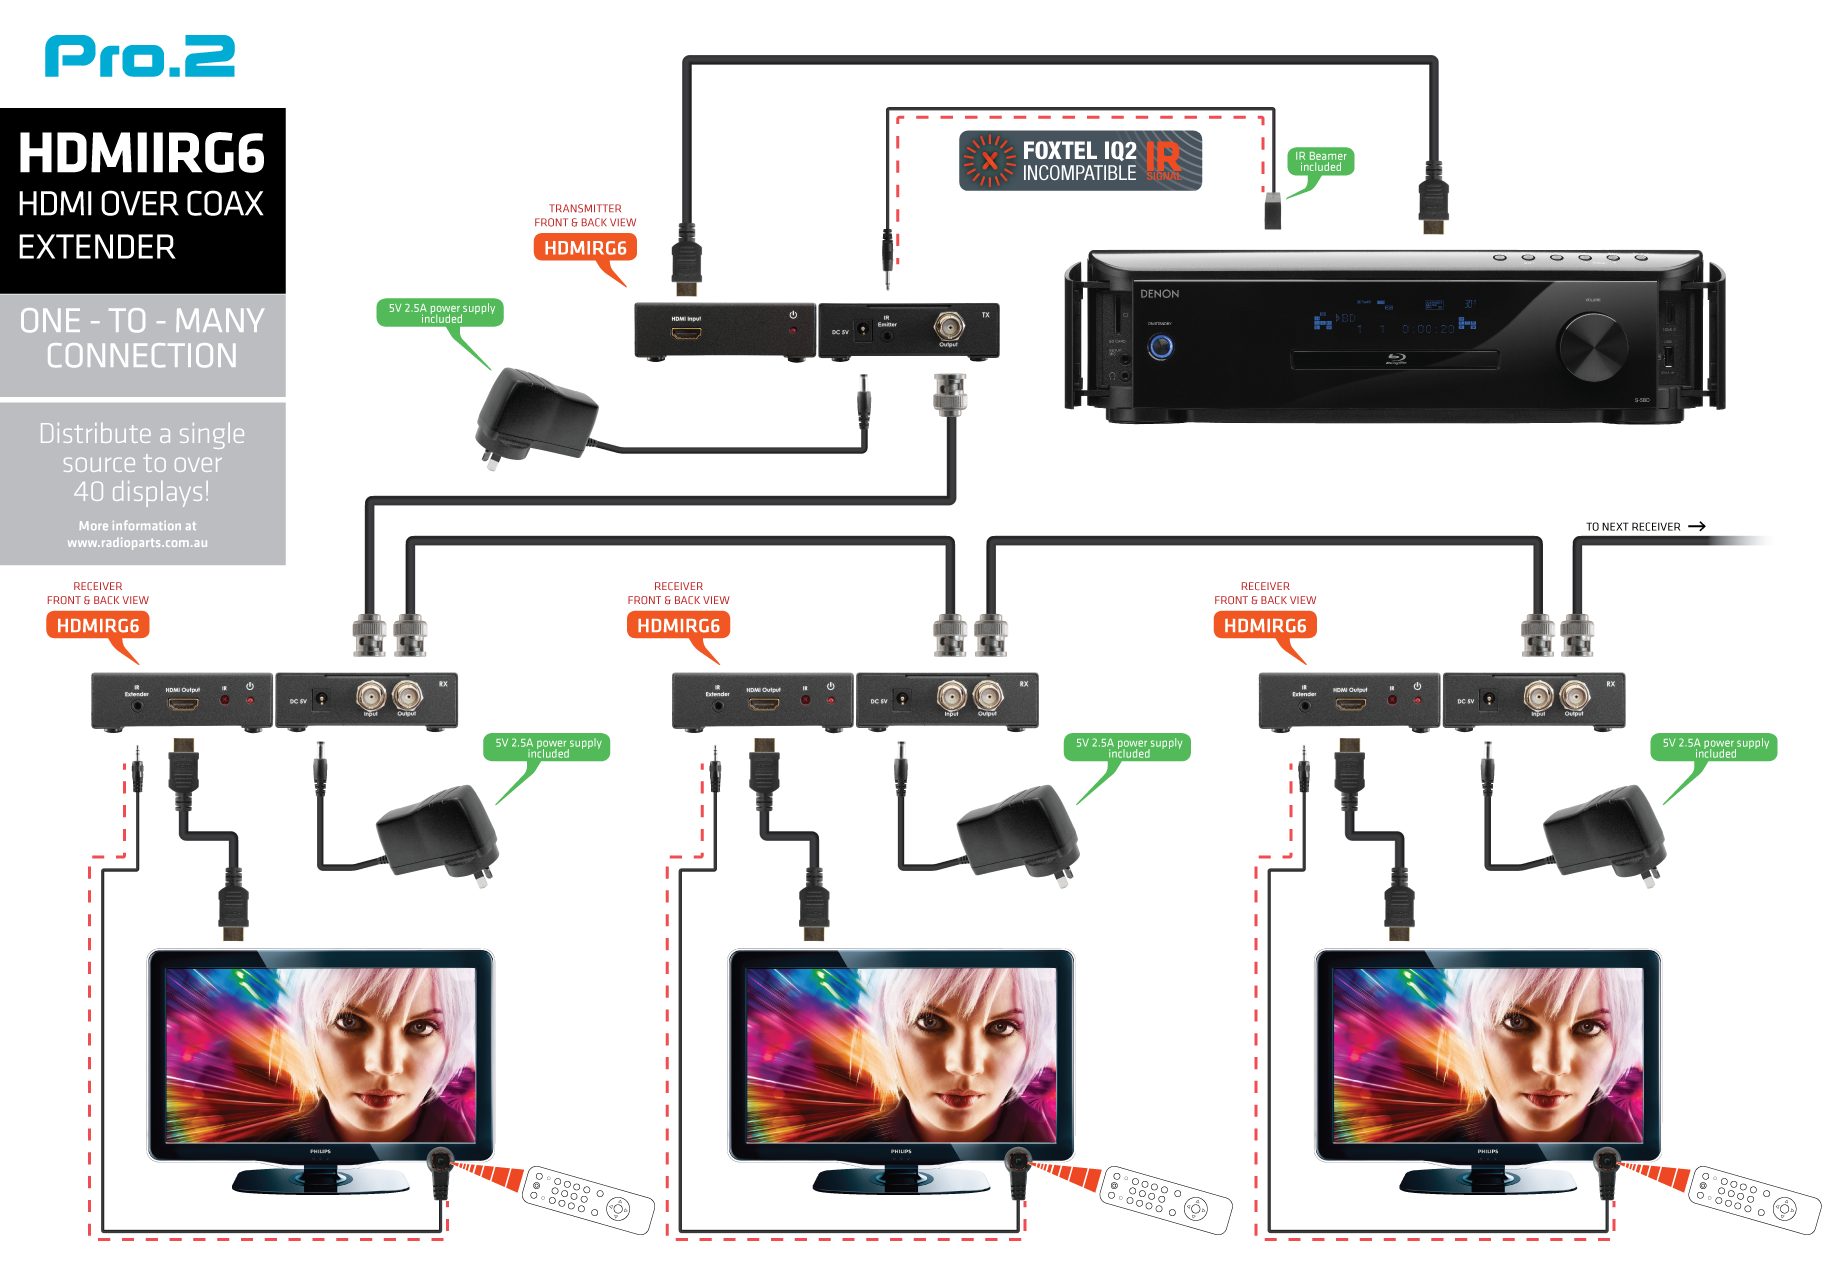 HDMIRG6 HDMI OVER SINGLE COAXIAL WITH IR Pro2